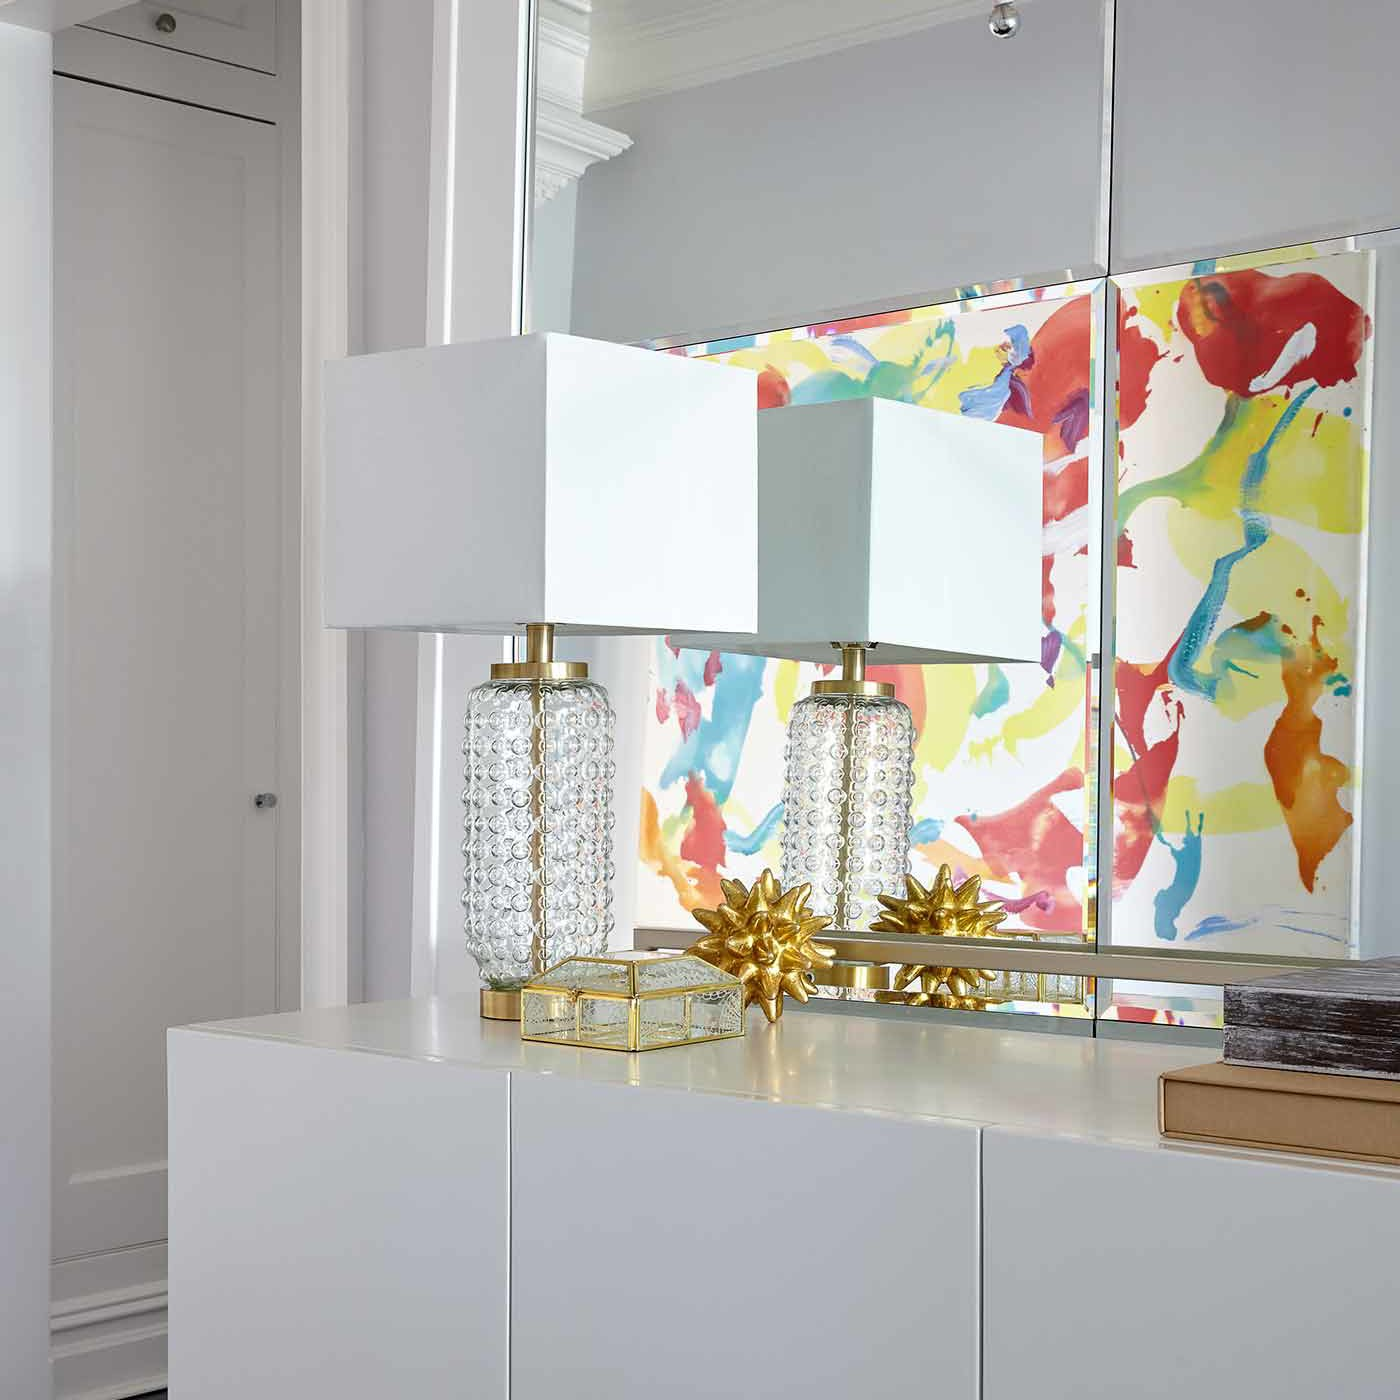 Foyer area decor in a NYC interior design project by Darci Hether New York